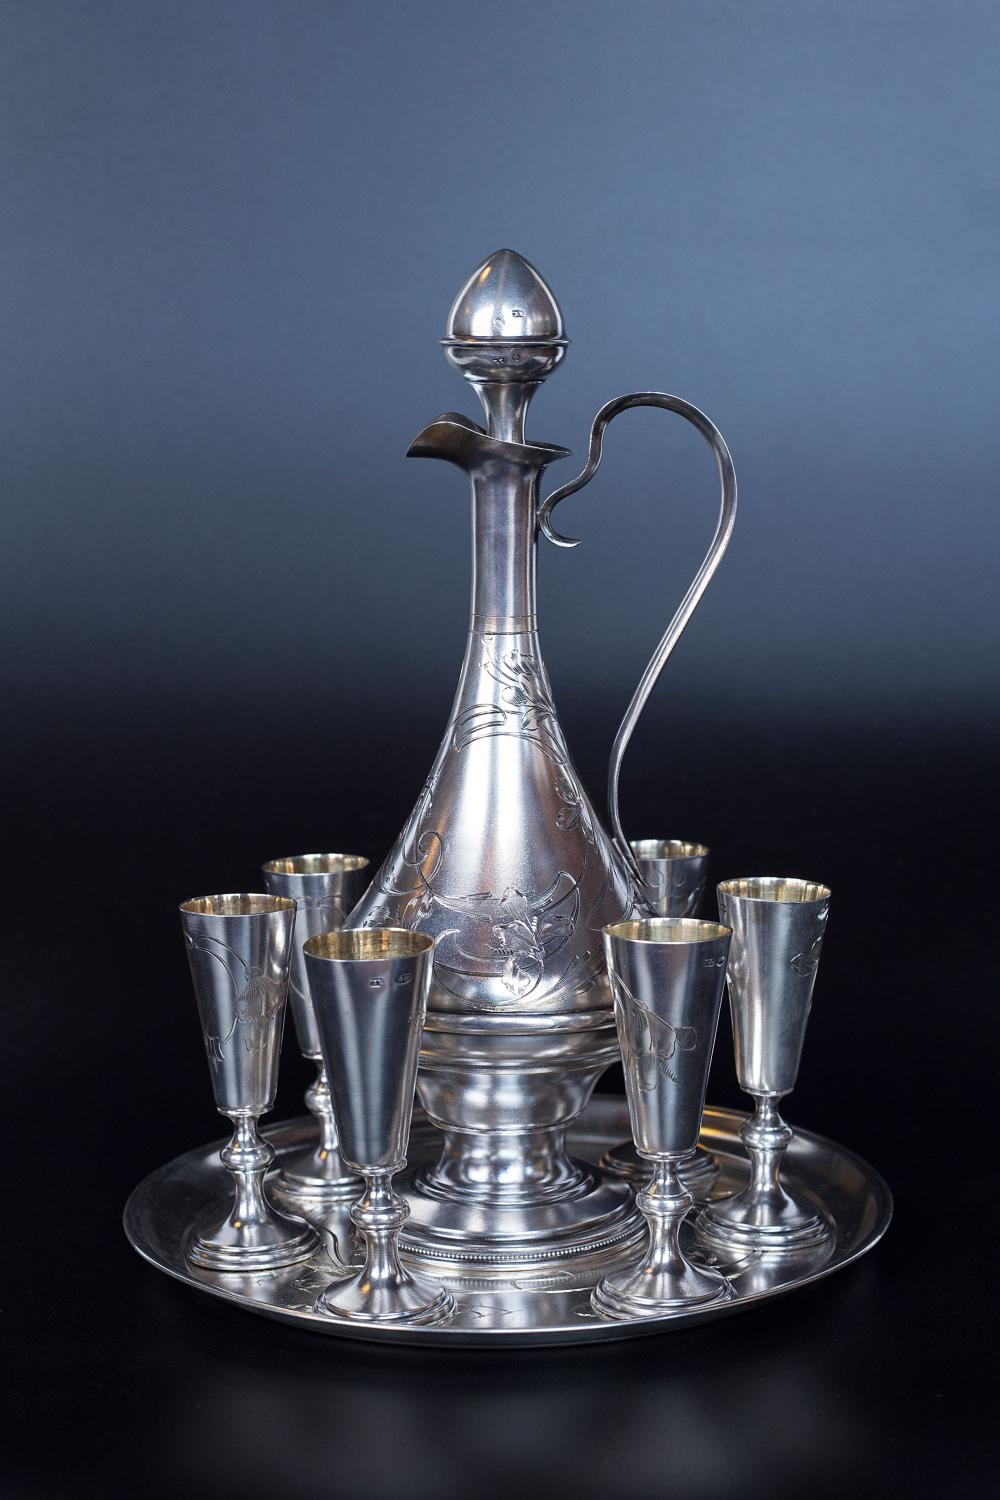 Late 19th century Russian silver smith Ivan Khlebnikov set of 6 vodka cups, carafe and tray